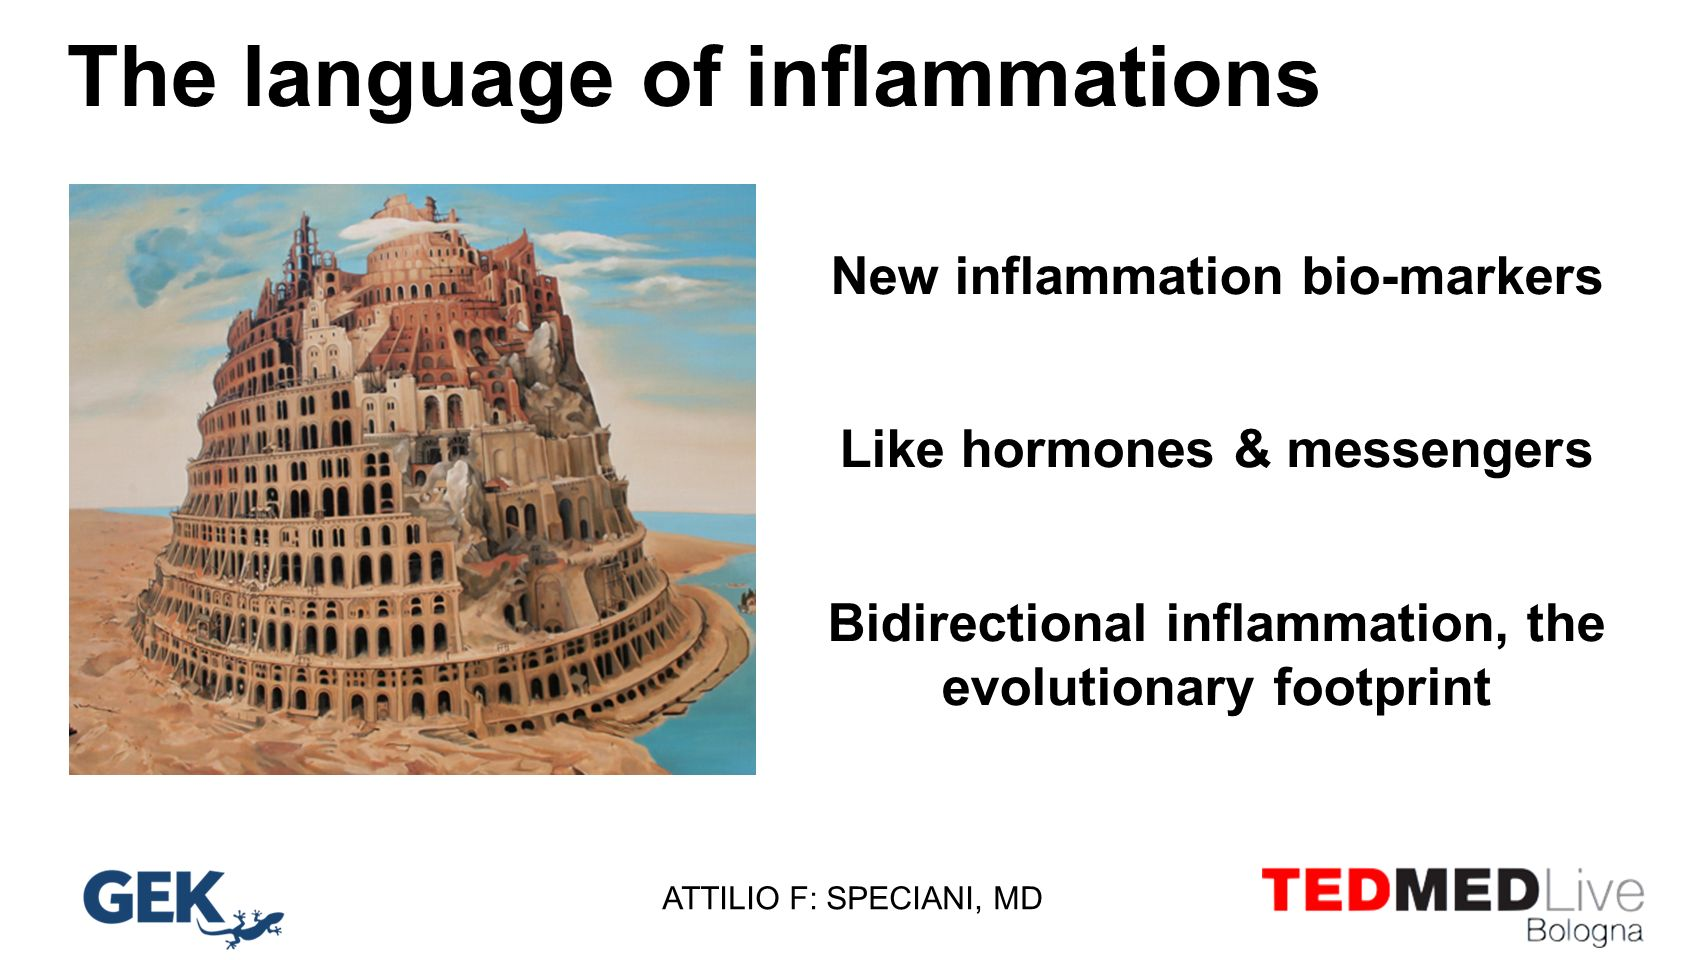 The language of inflammations